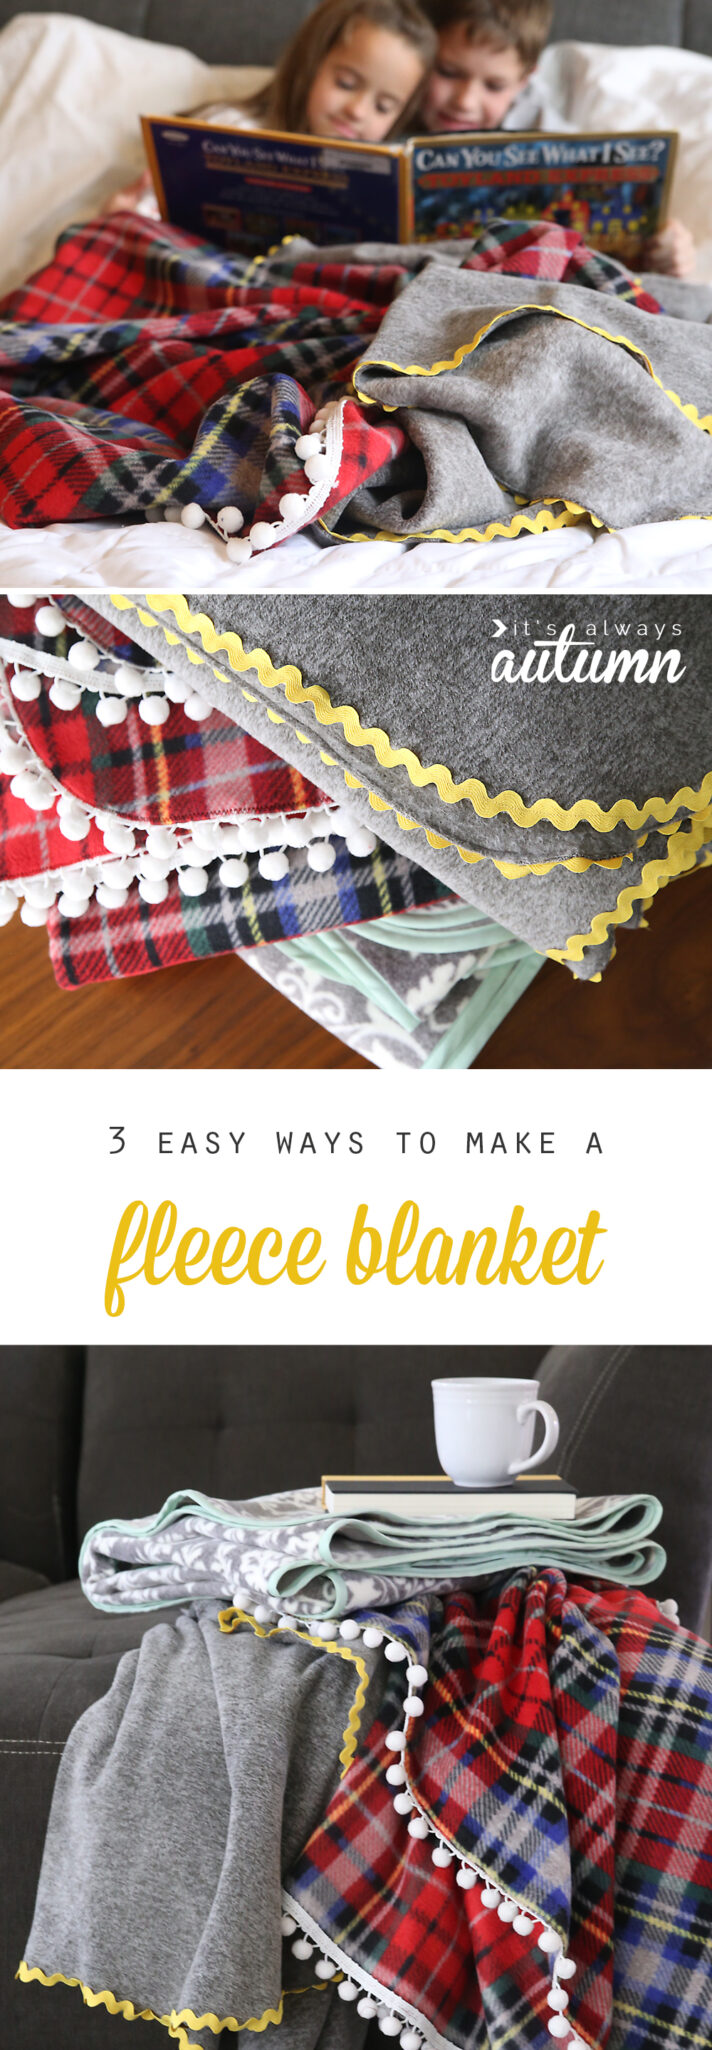 3 Easy Diy Storage Ideas For Small Kitchen: 3-easy-ways-to-make-a-fleece-blanket